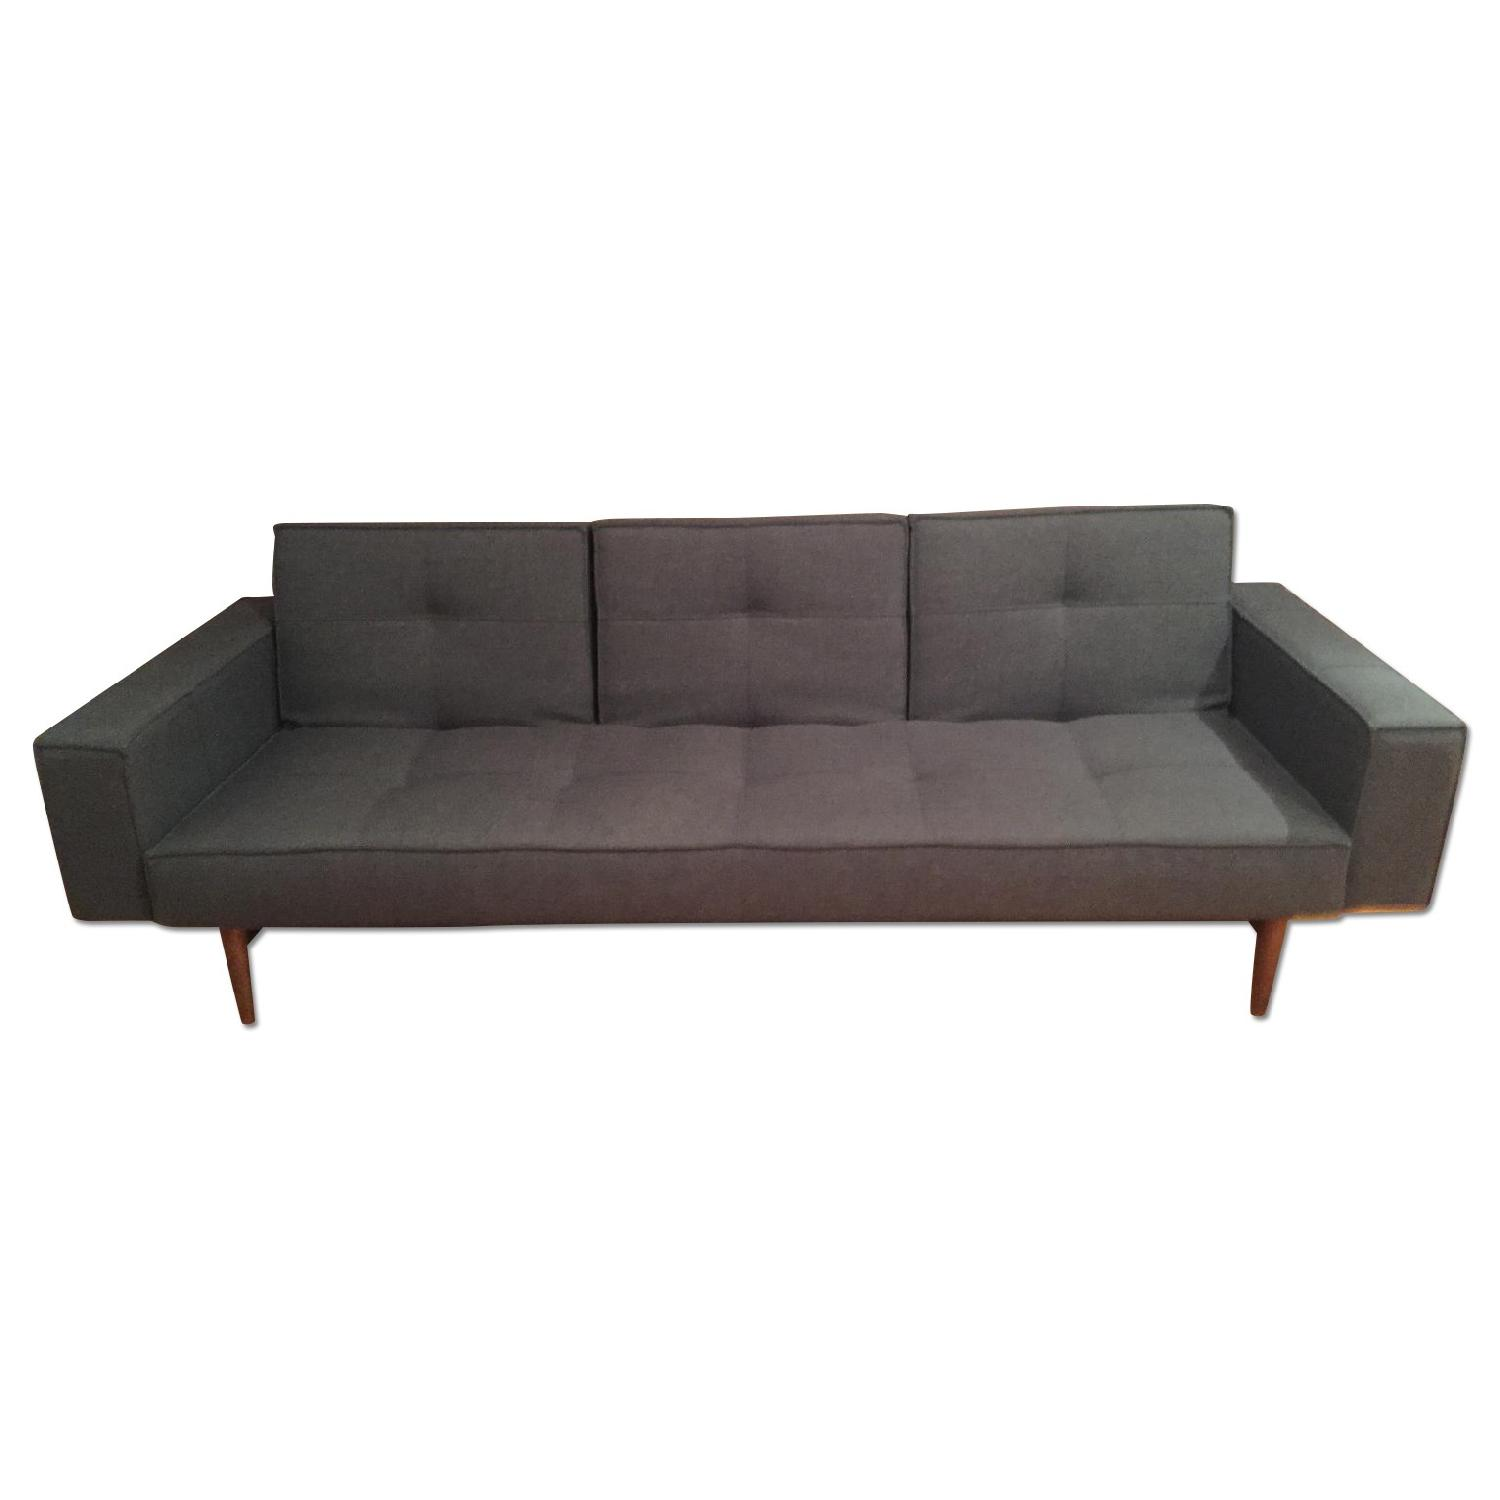 Room board eden sleeper sofa aptdeco Room and board furniture quality